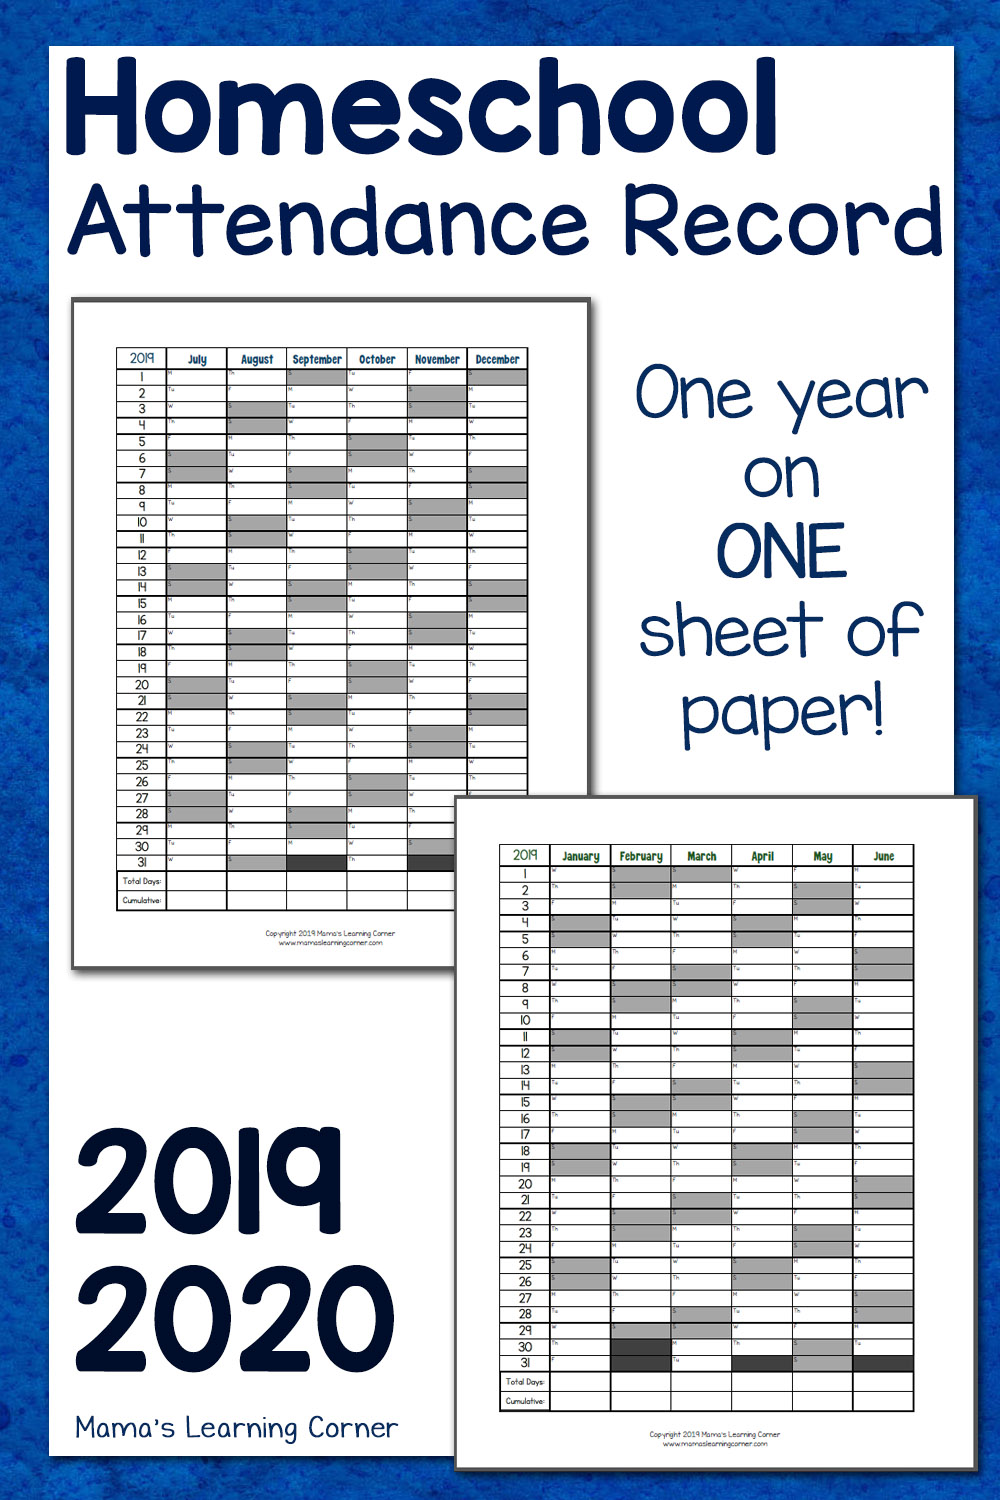 Fabulous Simple Homeschool Attendance Record 2019 2020 Mamas Download Free Architecture Designs Scobabritishbridgeorg